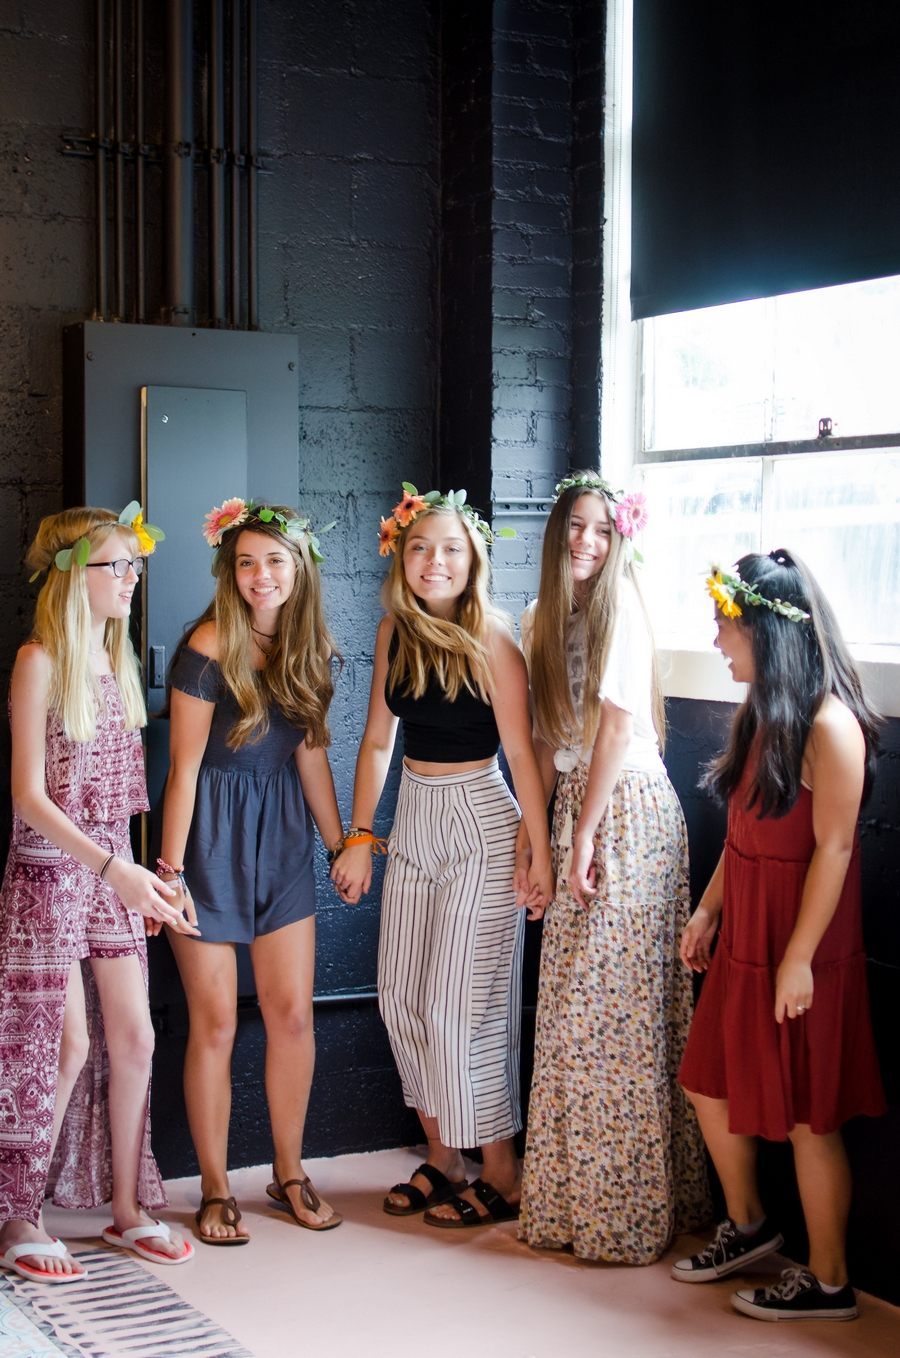 Sweet-16-Flower-Crown-Birthday-Party-City-Farmhouse-Nashville-Photographers+26